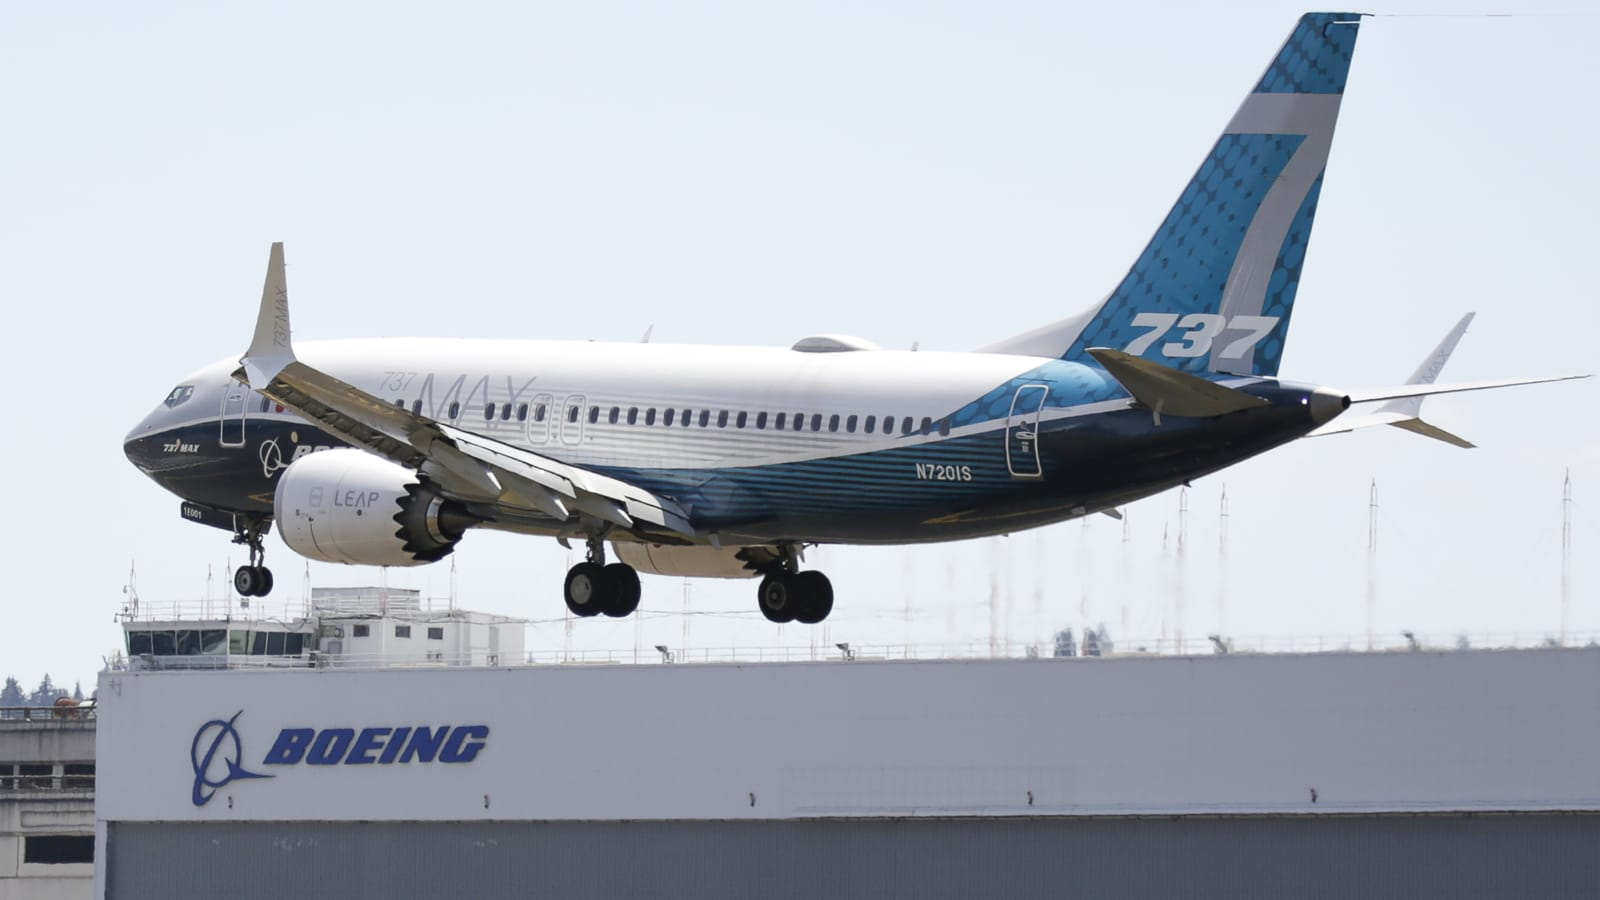 Boeing (BA) Q1 2021 earnings report: Another loss